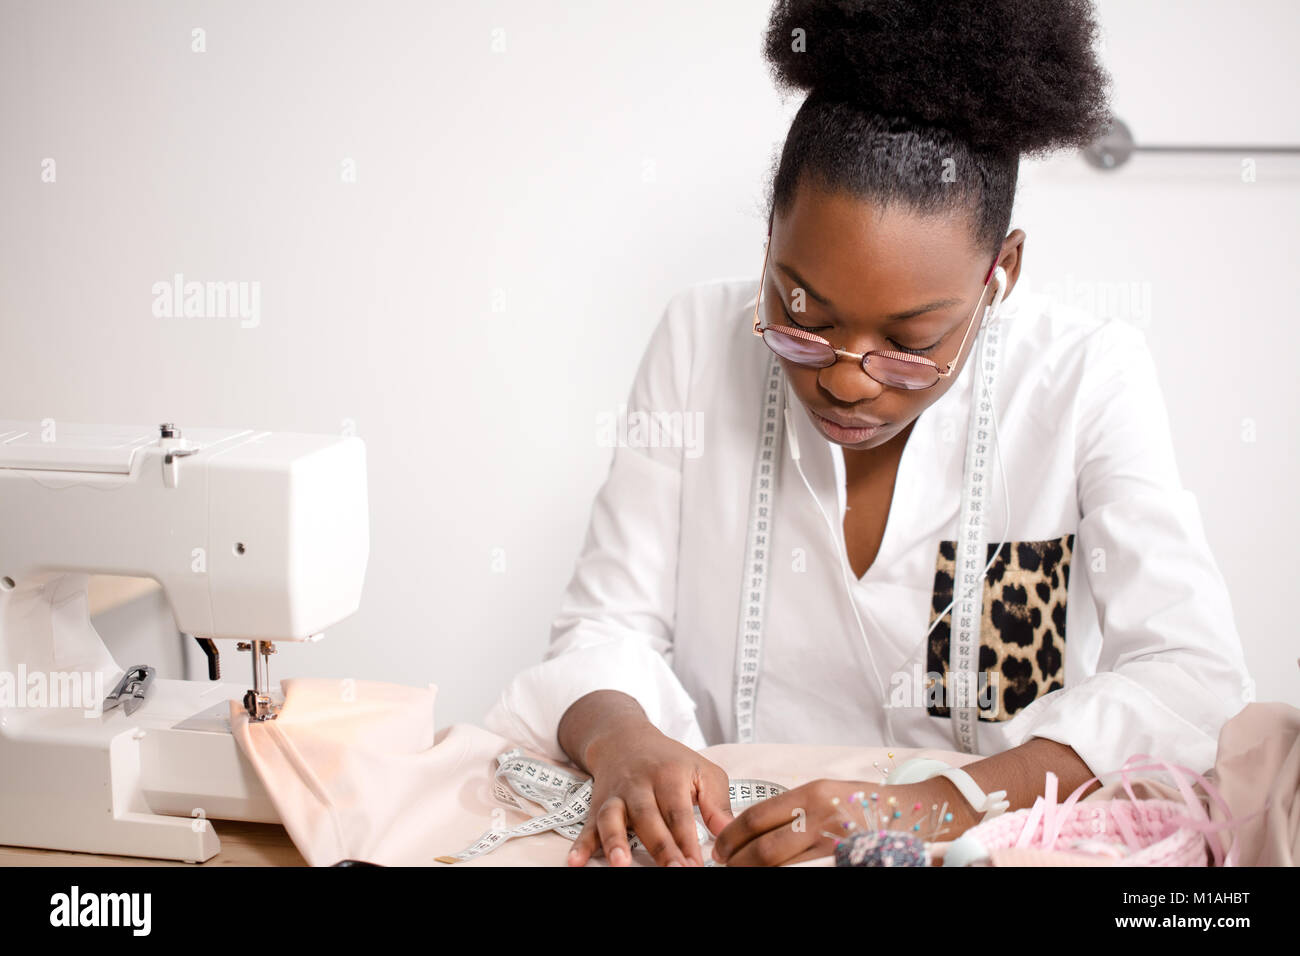 african seamstress working with fabric takes measures - Stock Image